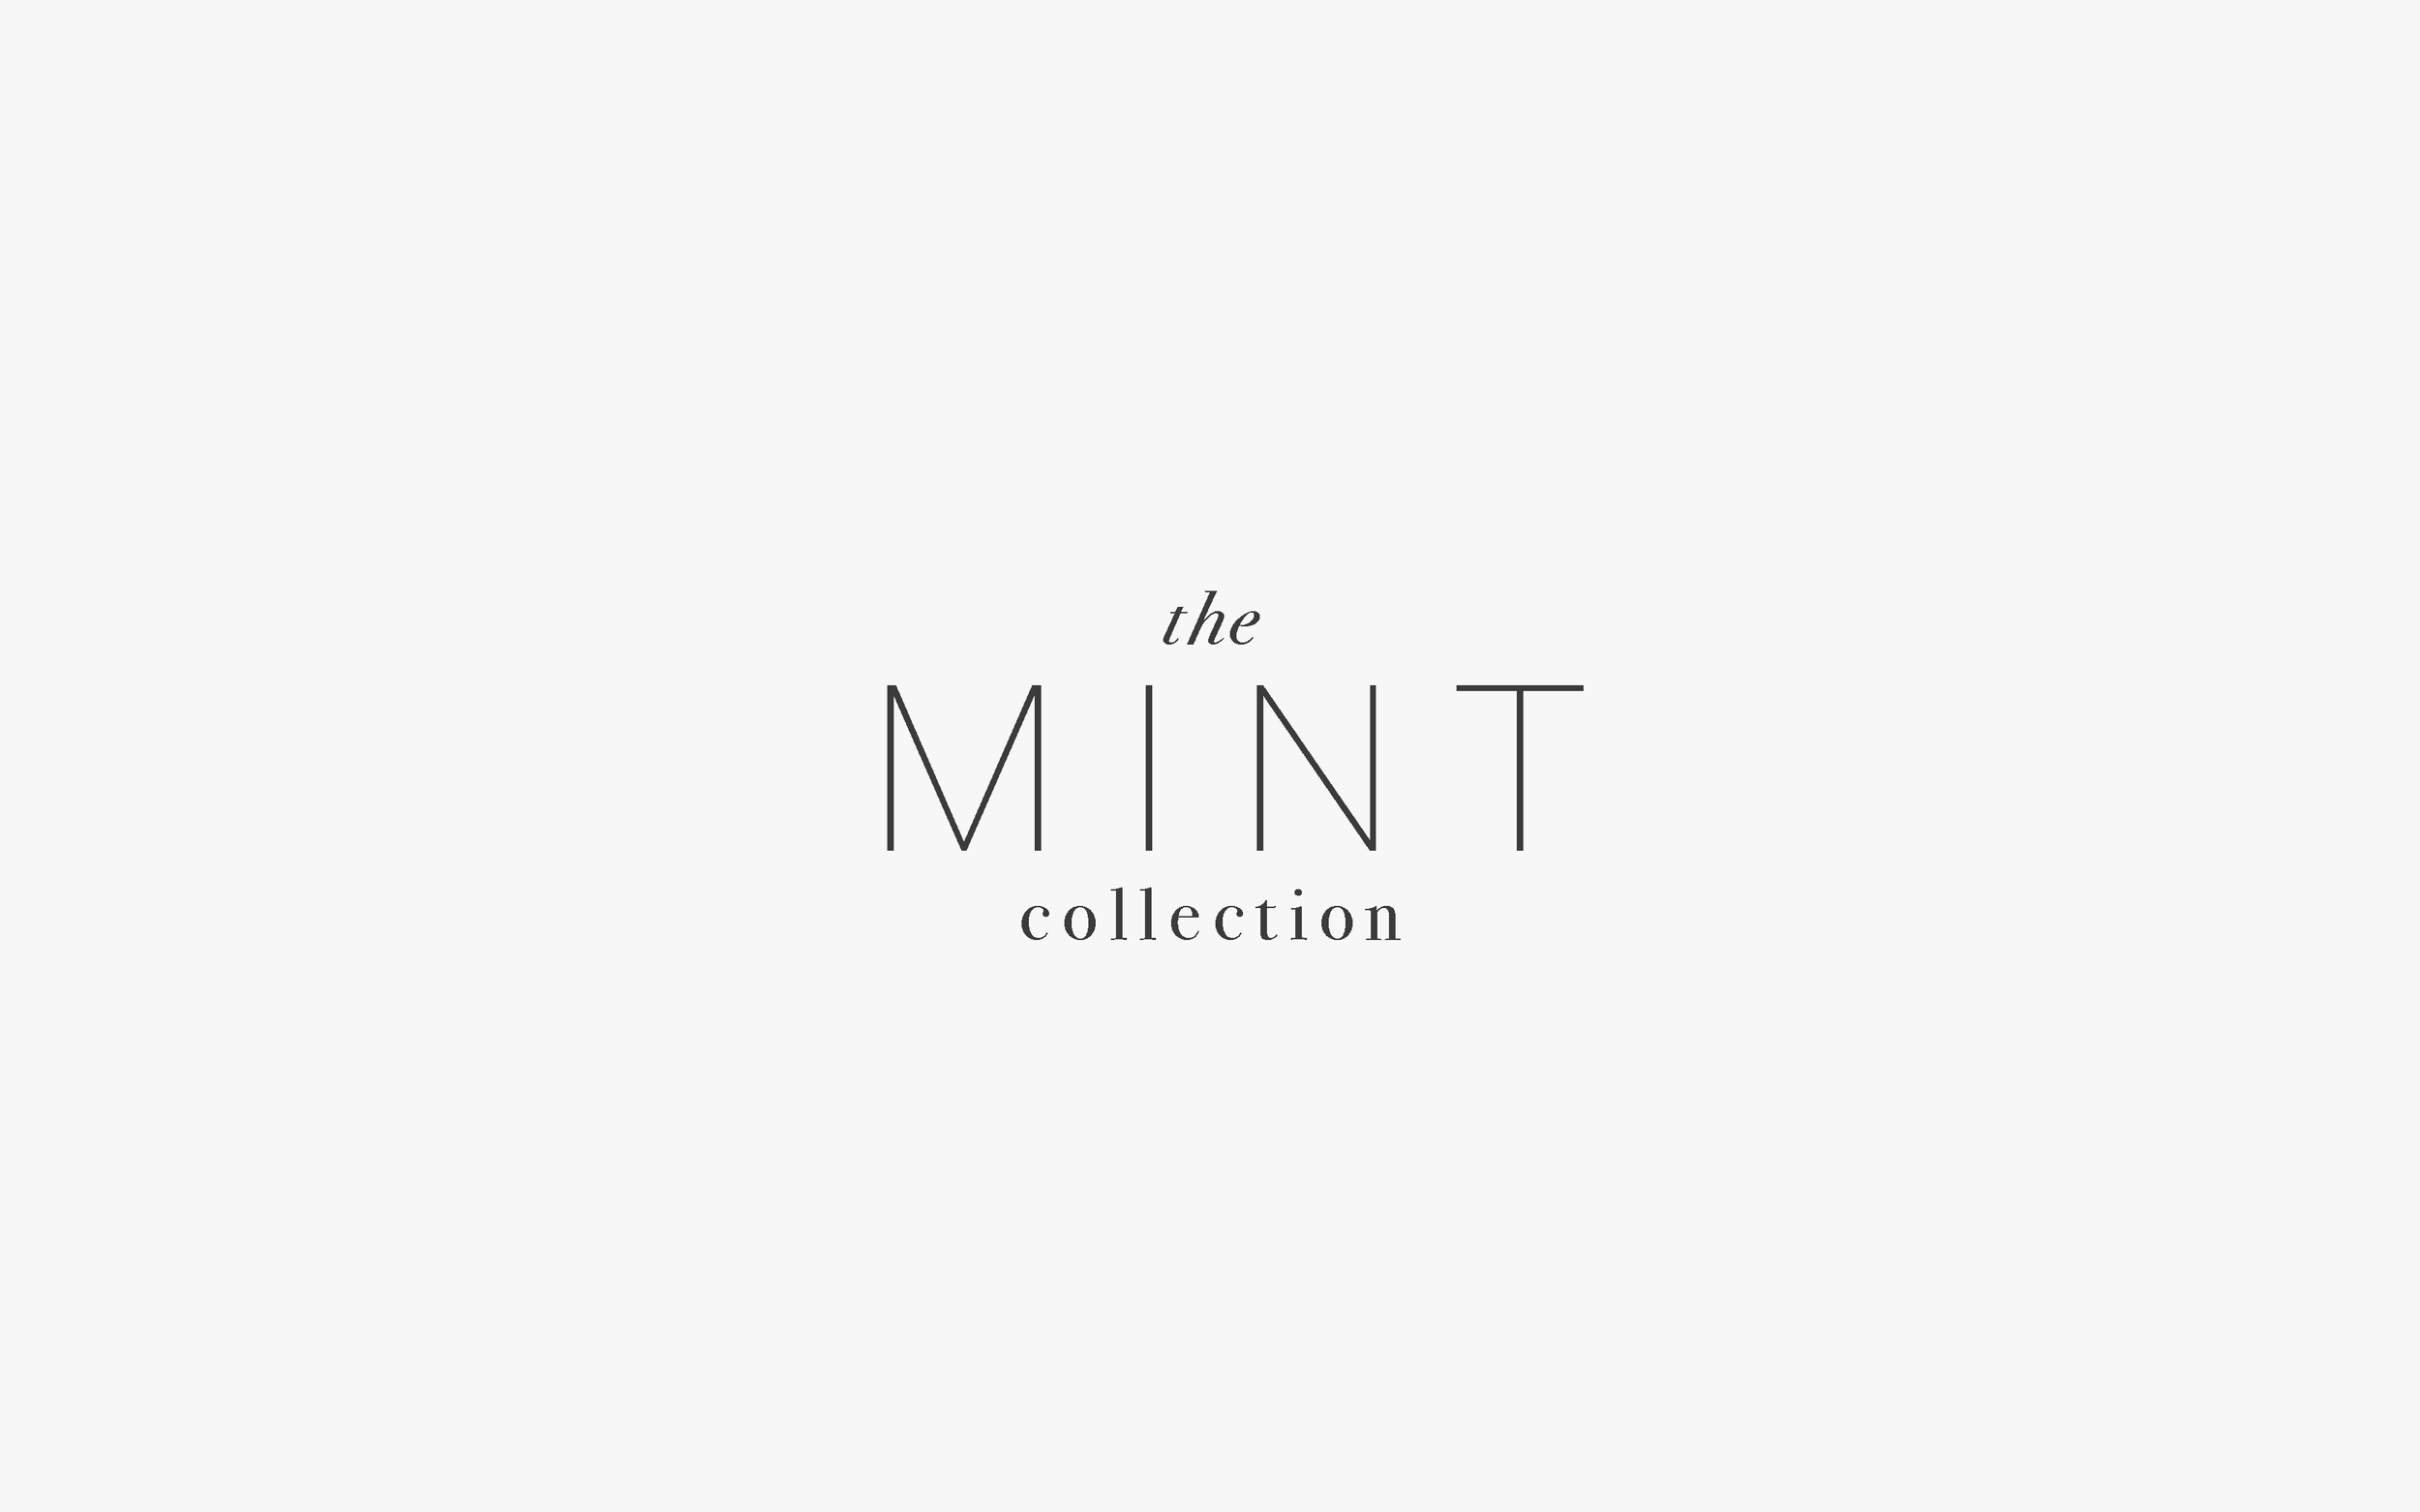 mintcollection-travel-branding-graphicdesign-iowa-worldwide-hospitatlity.png